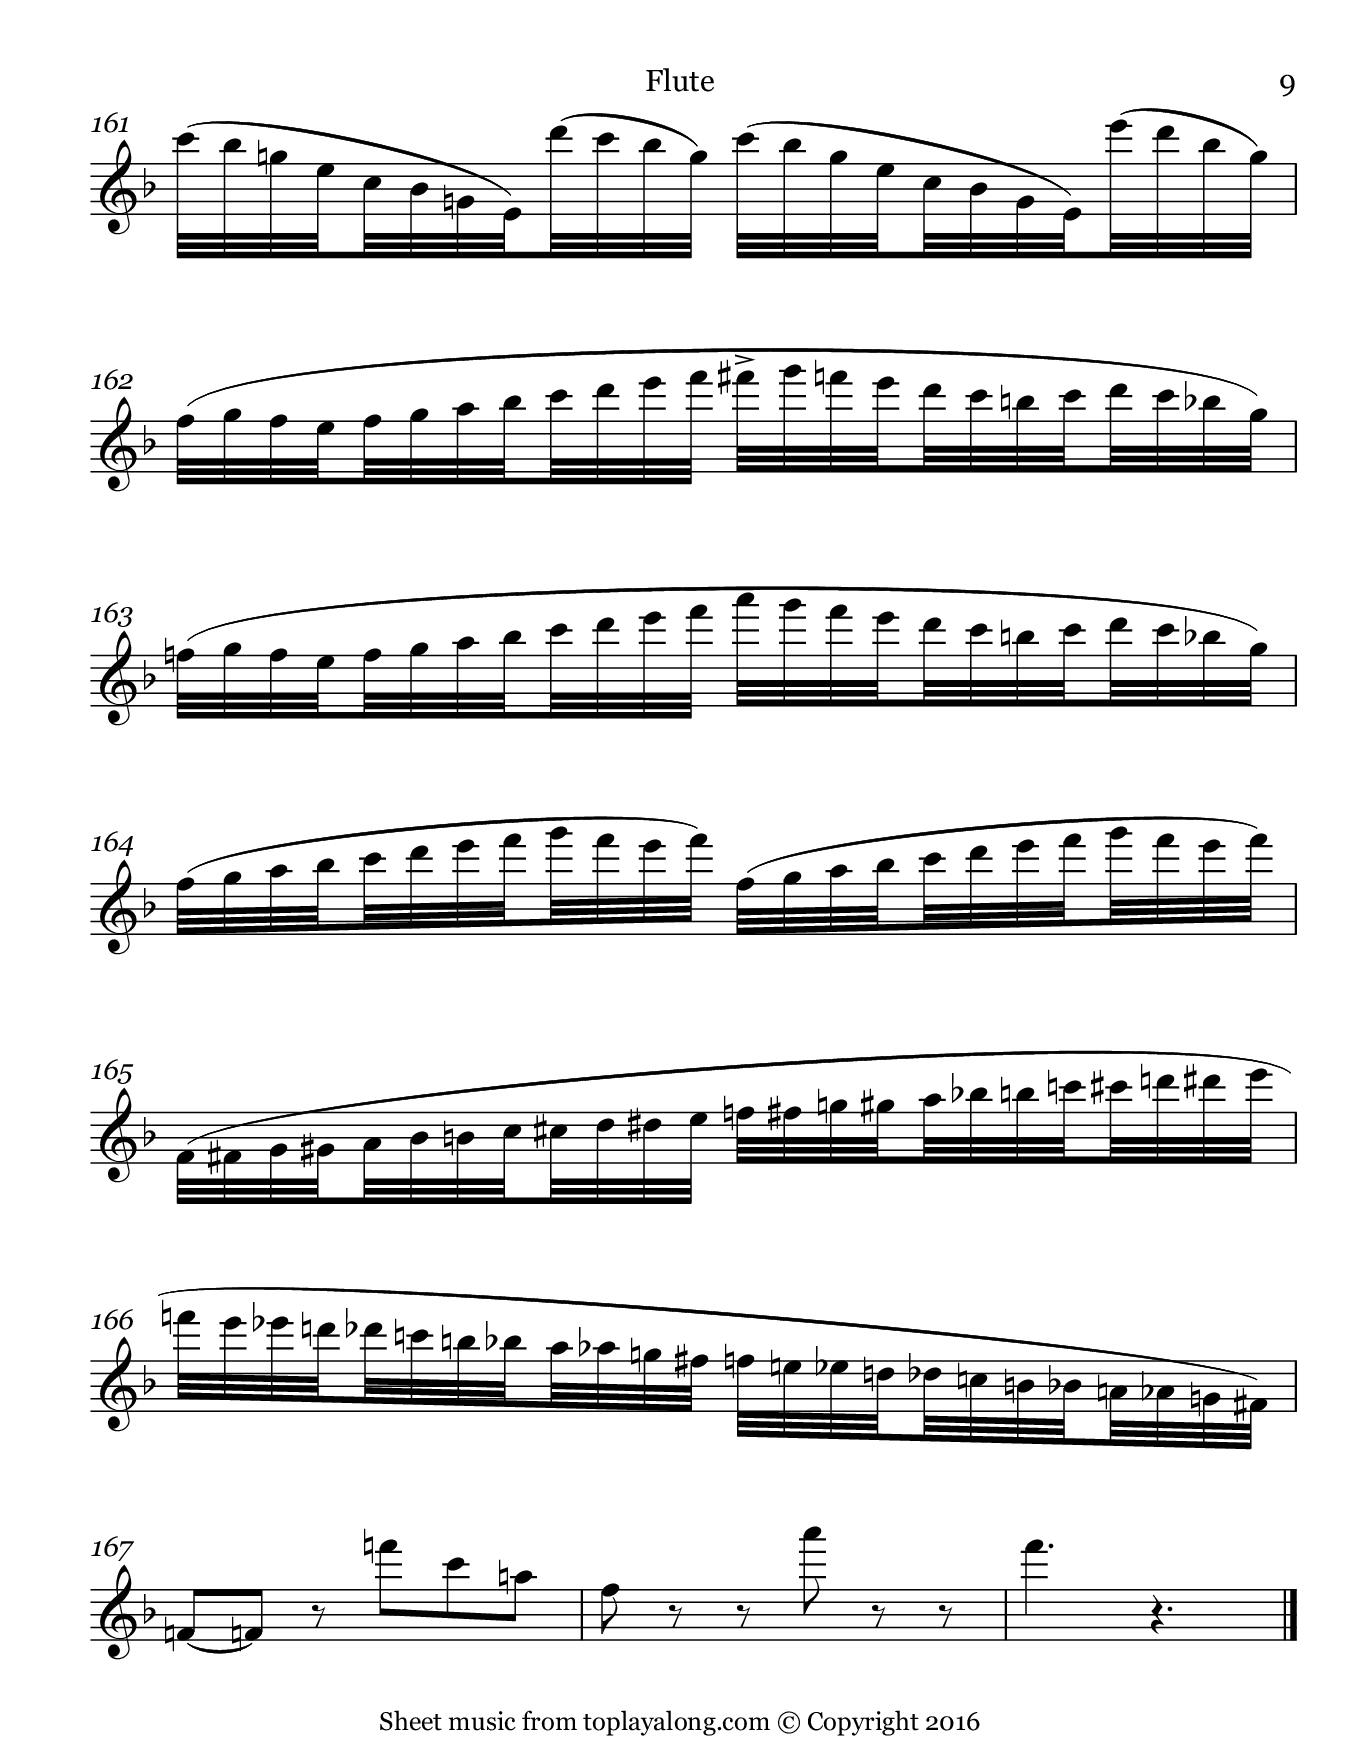 Carnival of Venice by Briccialdi. Sheet music for Flute, page 9.